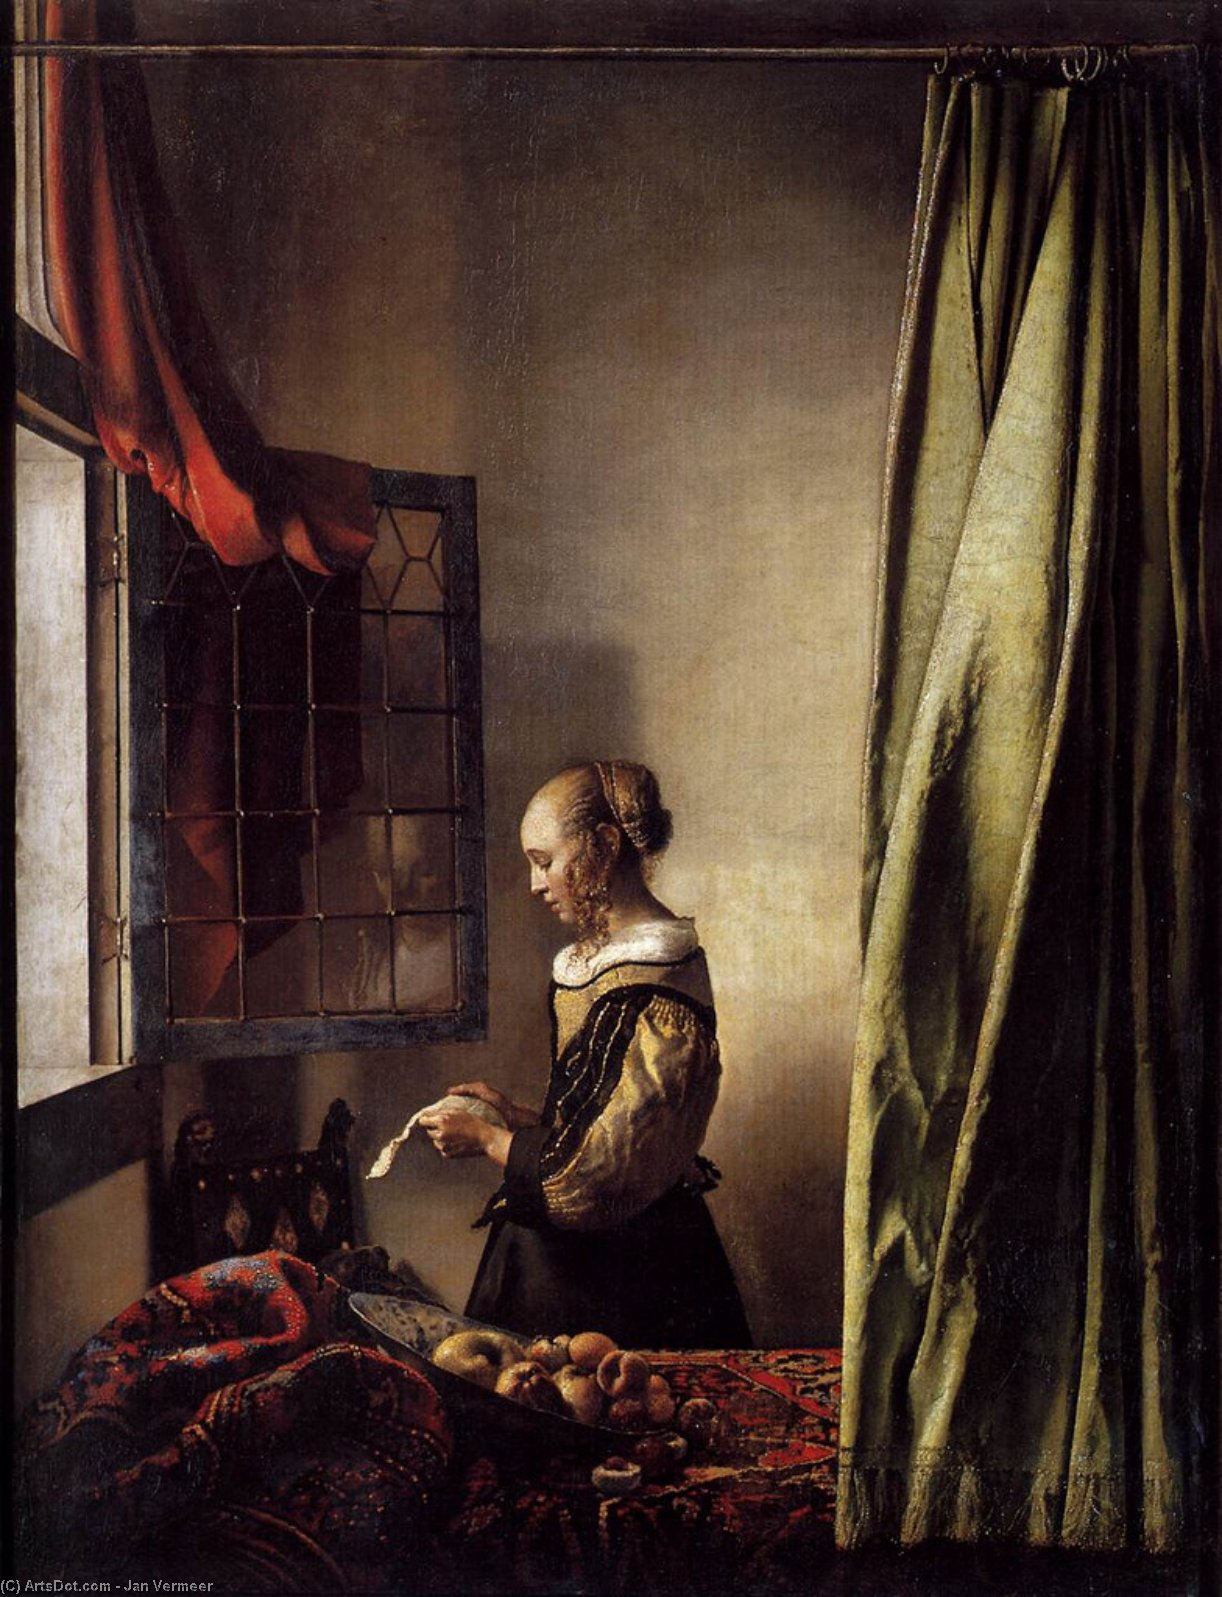 Wikioo.org - The Encyclopedia of Fine Arts - Painting, Artwork by Jan Vermeer - Girl Reading a Letter at an Open Window